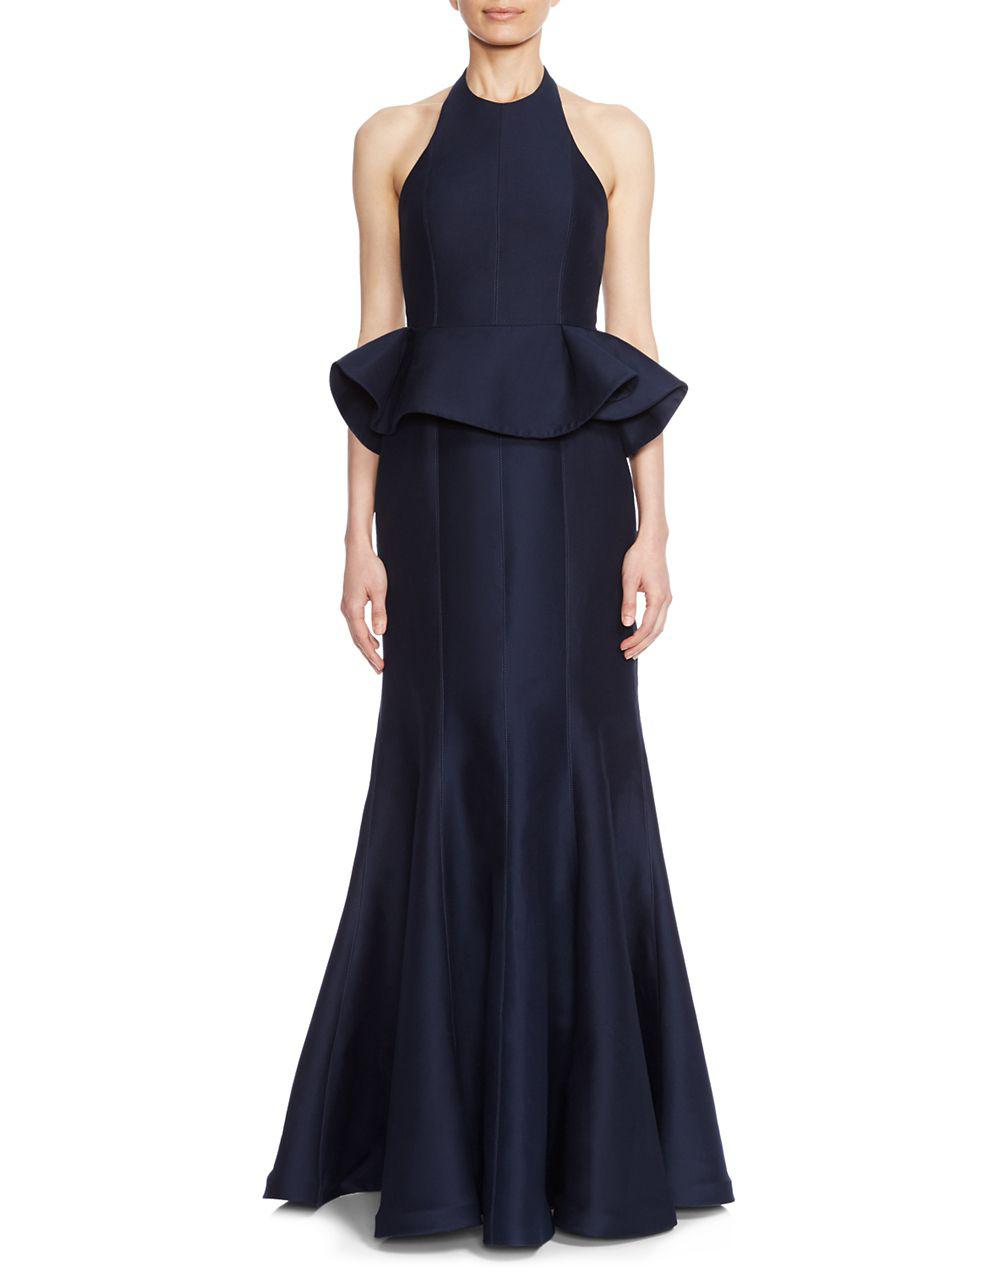 Lyst - Halston Heritage Flared Ruffled Evening Gown in Blue